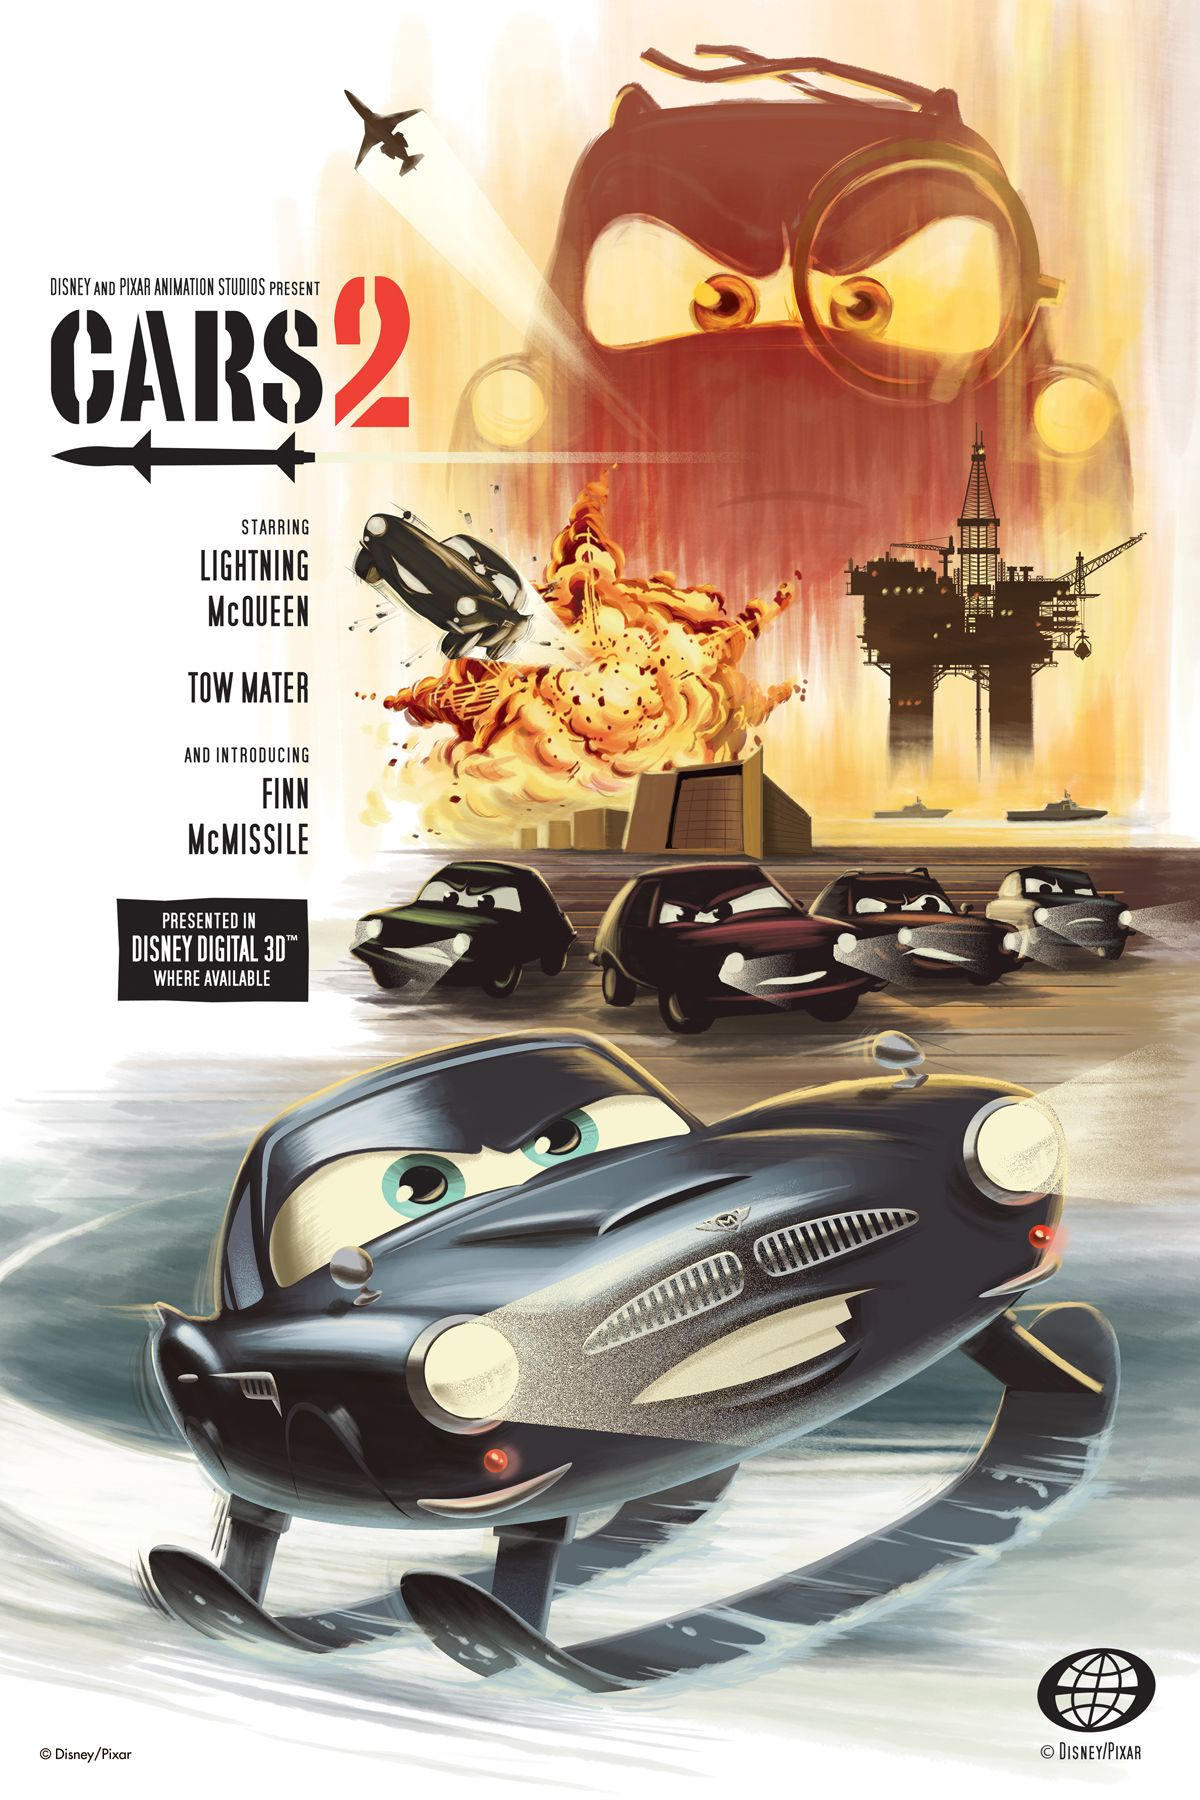 CARS-2 movie poster